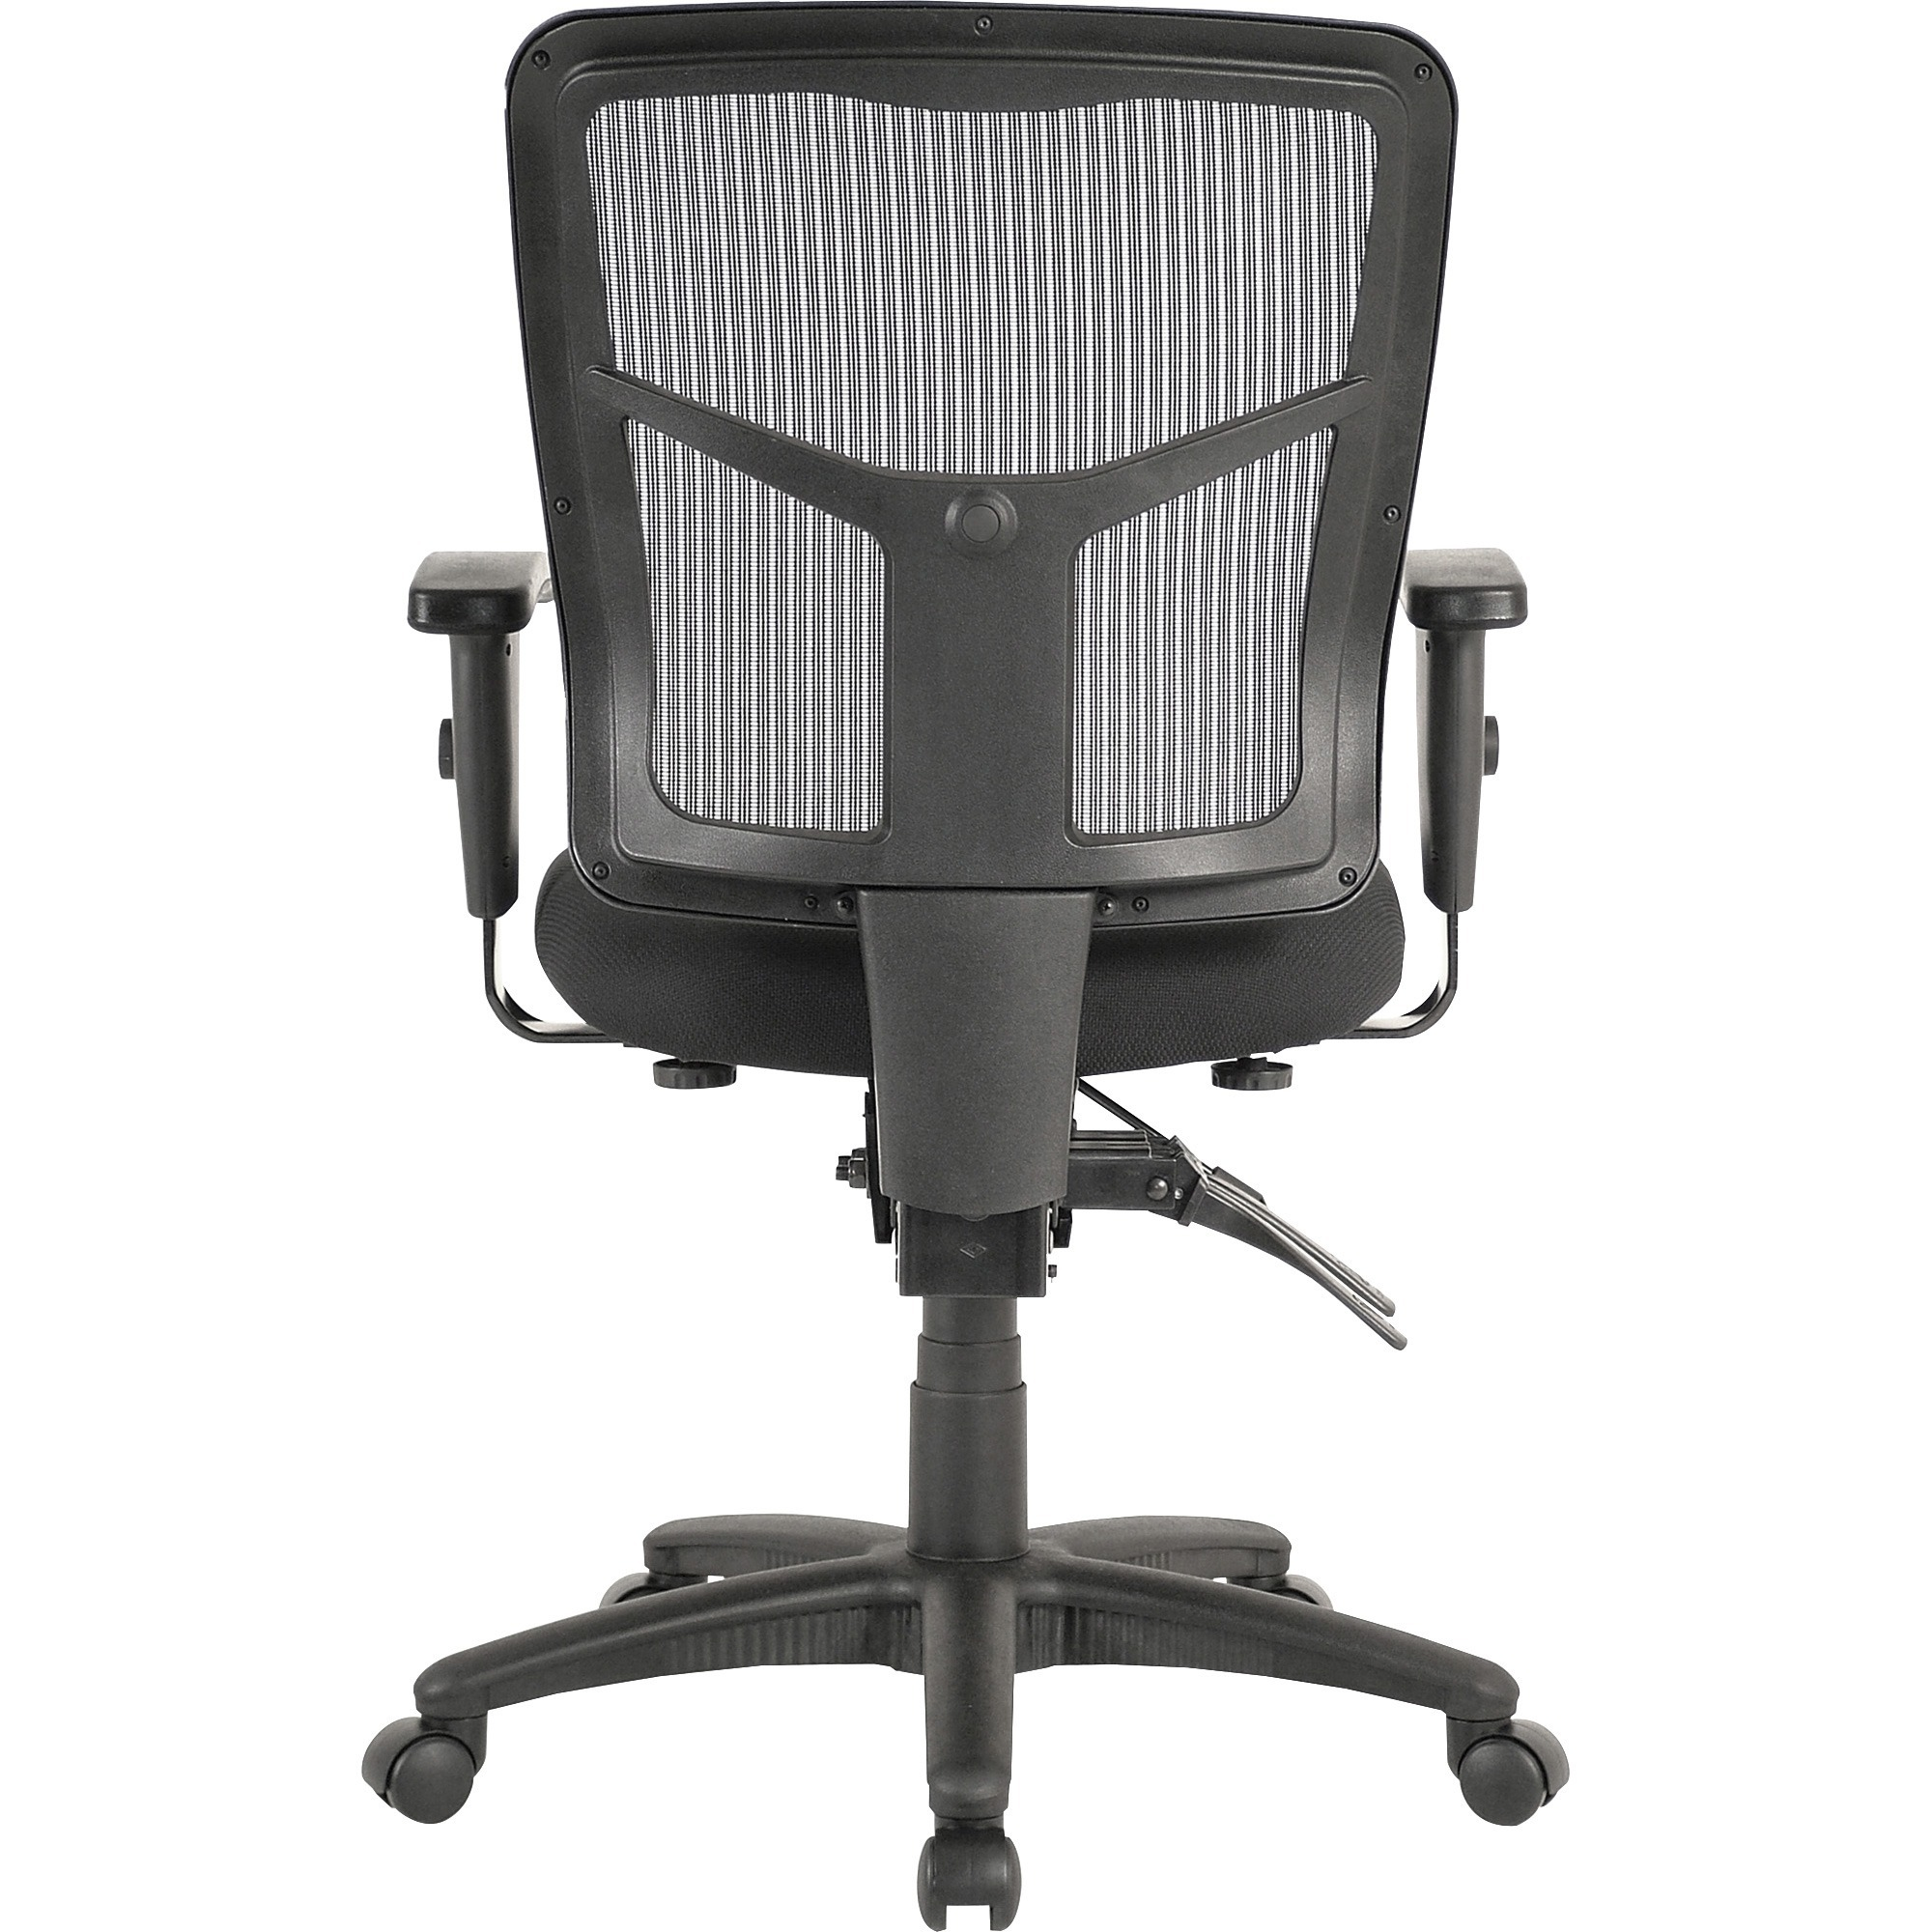 Llr86201 Lorell Ergomesh Series Managerial Mid Back Chair